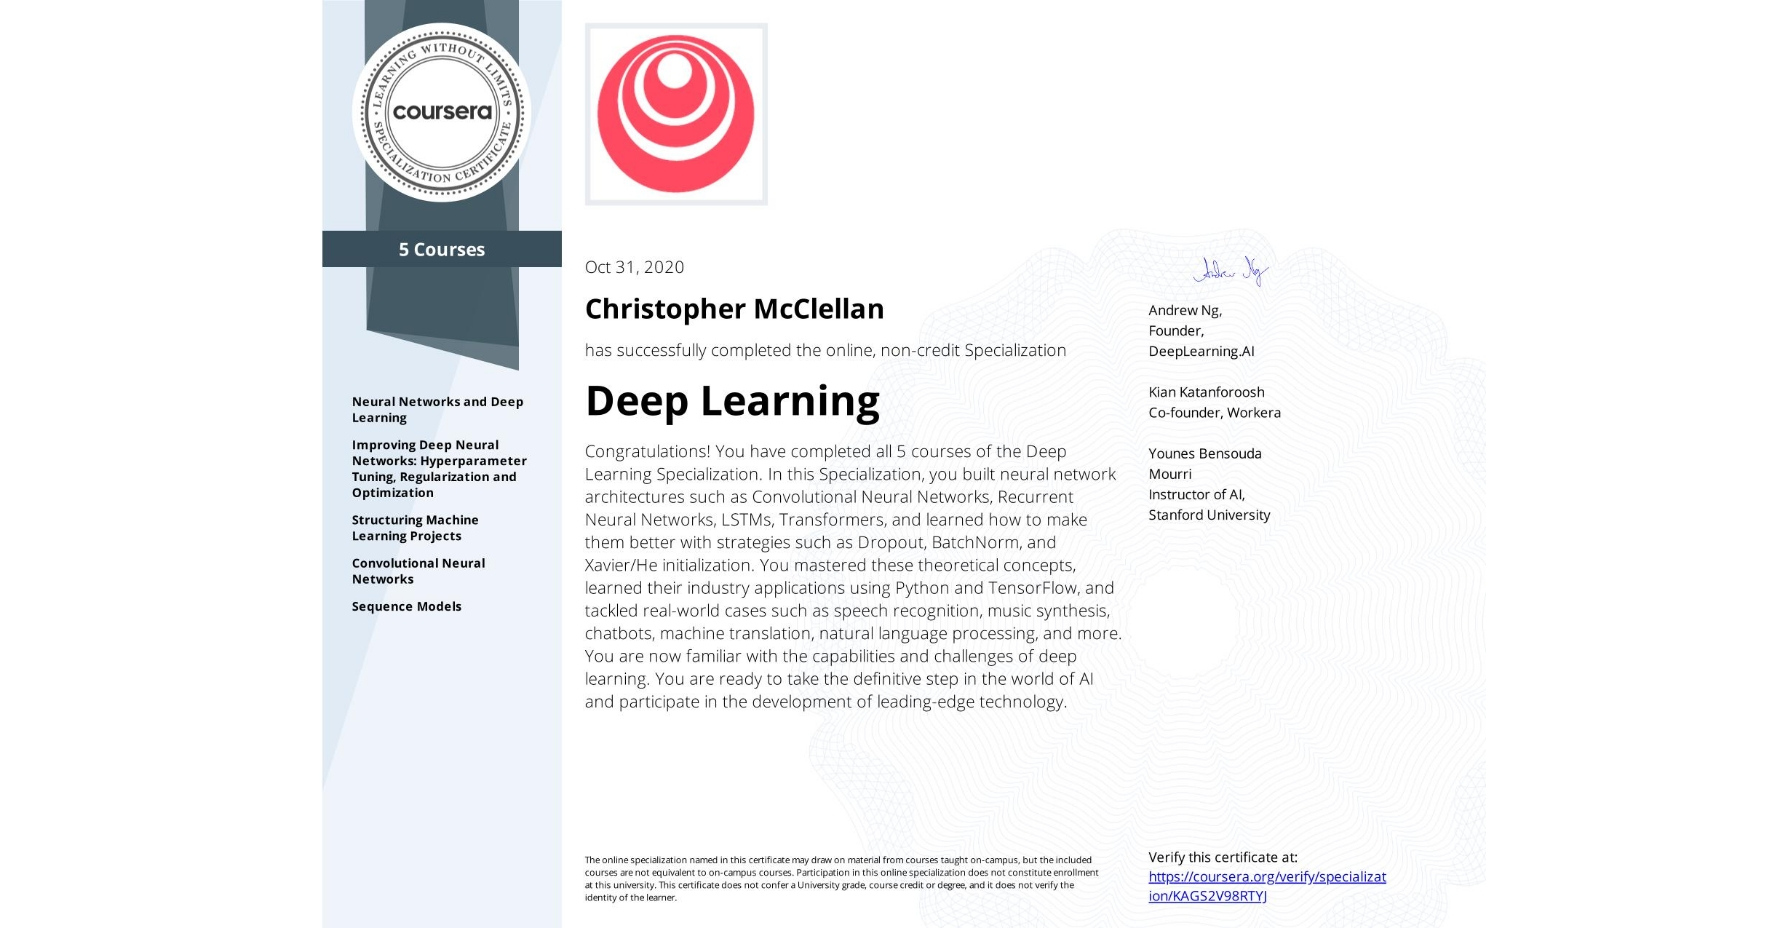 View certificate for Christopher McClellan, Deep Learning, offered through Coursera. Congratulations! You have completed all 5 courses of the Deep Learning Specialization.  In this Specialization, you built neural network architectures such as Convolutional Neural Networks, Recurrent Neural Networks, LSTMs, Transformers, and learned how to make them better with strategies such as Dropout, BatchNorm, and Xavier/He initialization. You mastered these theoretical concepts, learned their industry applications using Python and TensorFlow, and tackled real-world cases such as speech recognition, music synthesis, chatbots, machine translation, natural language processing, and more.  You are now familiar with the capabilities and challenges of deep learning. You are ready to take the definitive step in the world of AI and participate in the development of leading-edge technology.